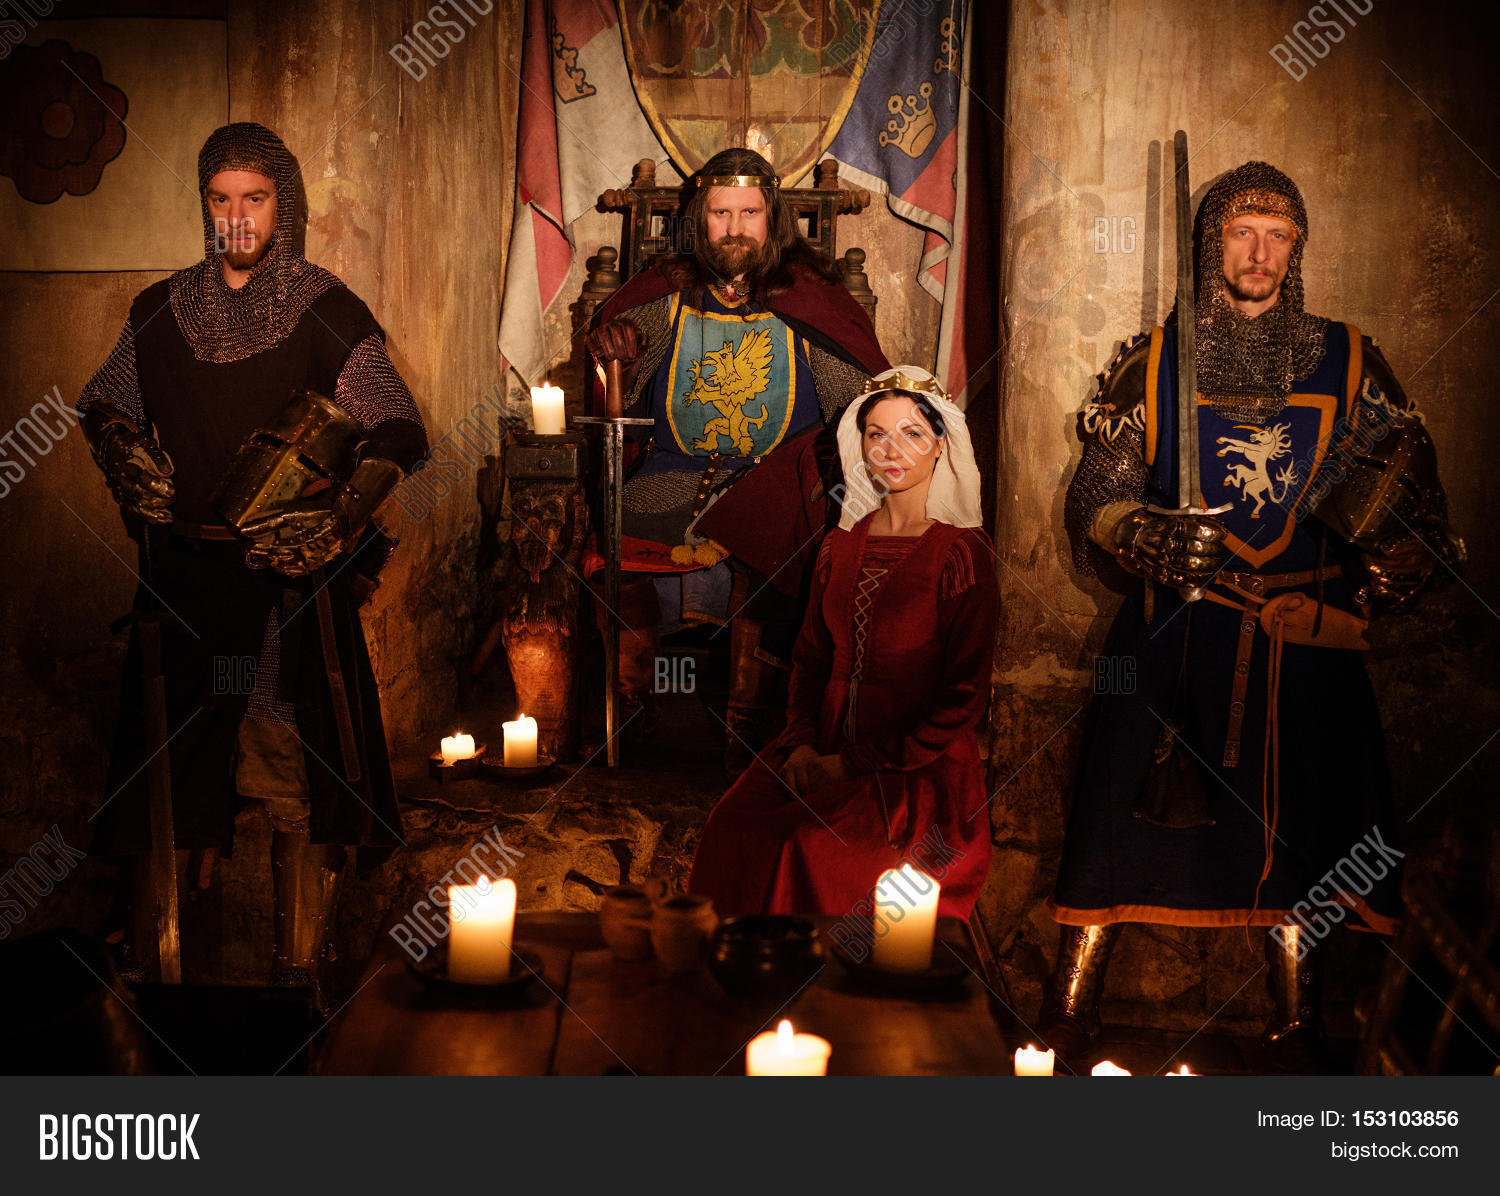 Medieval Kings and Queens   Complete List of Names & Date  Renaissance King And Queen